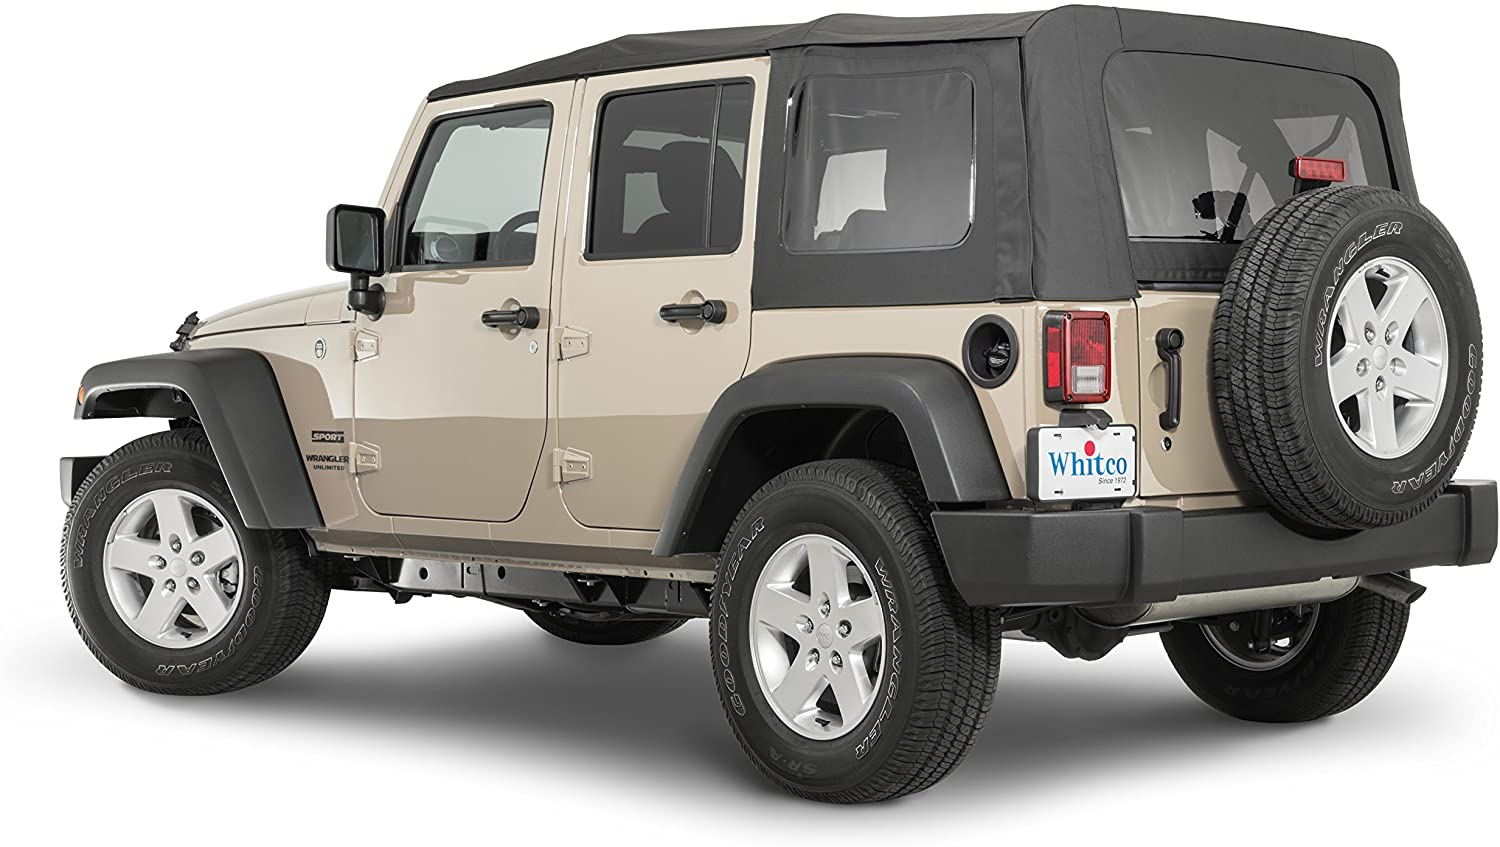 Whitco Replacement Soft Top in Black Diamond Fabric| Fits 2007-2009 Jeep JKU 4 Door Wrangler Vehicles| Tinted Removable Windows| Requires Original Soft Top Bows for Install| 35101435